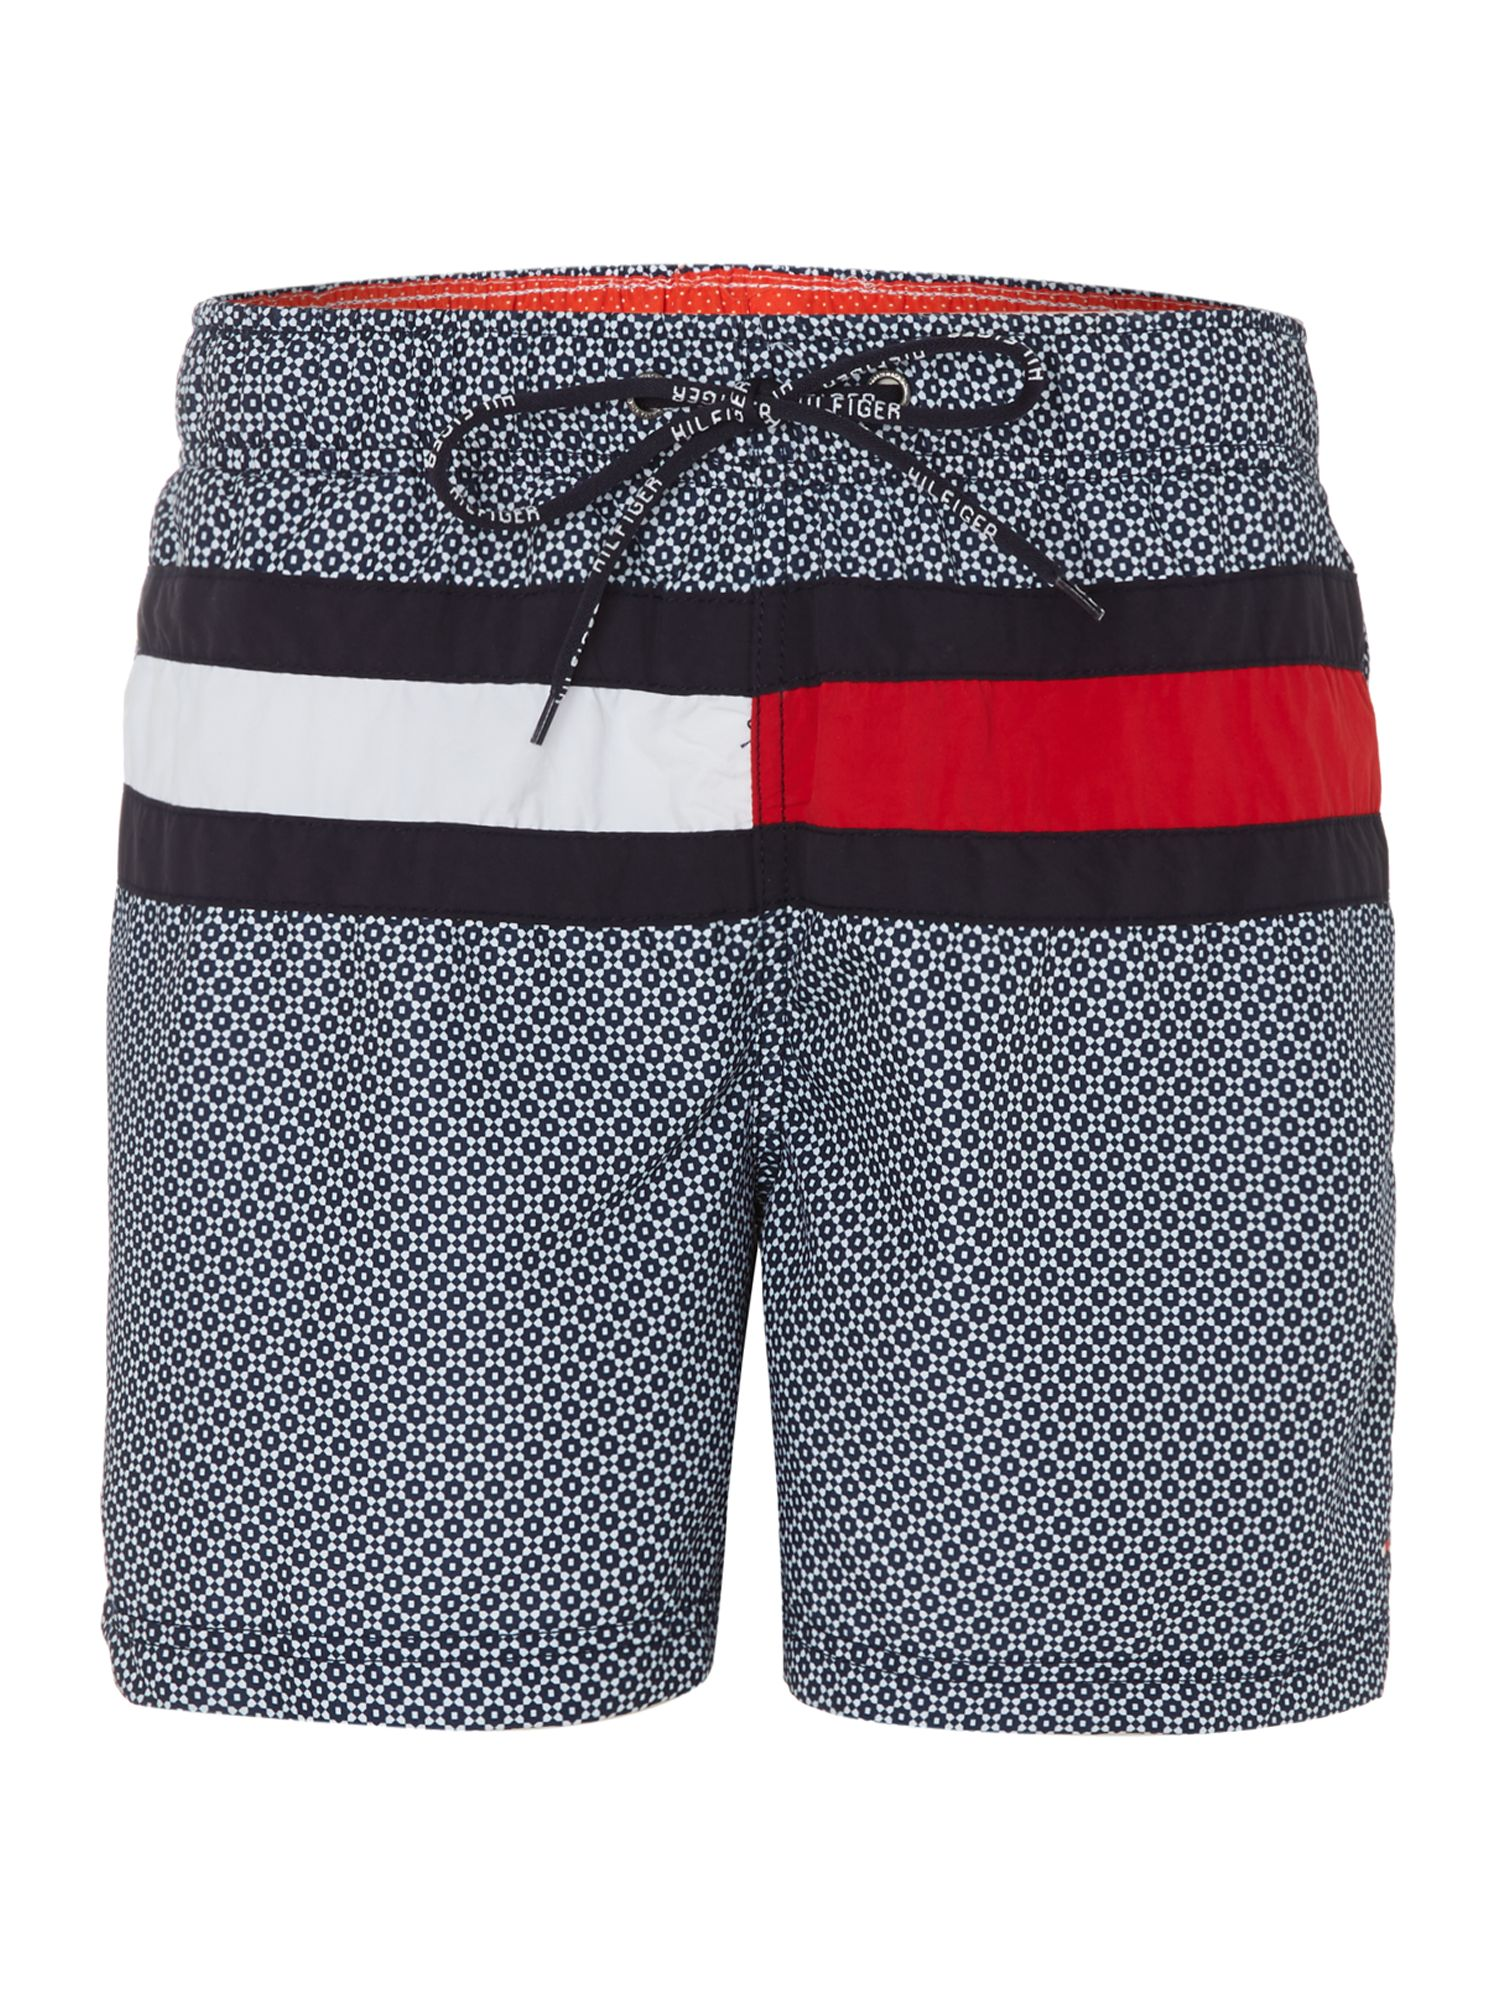 Large logo and geo print swim short